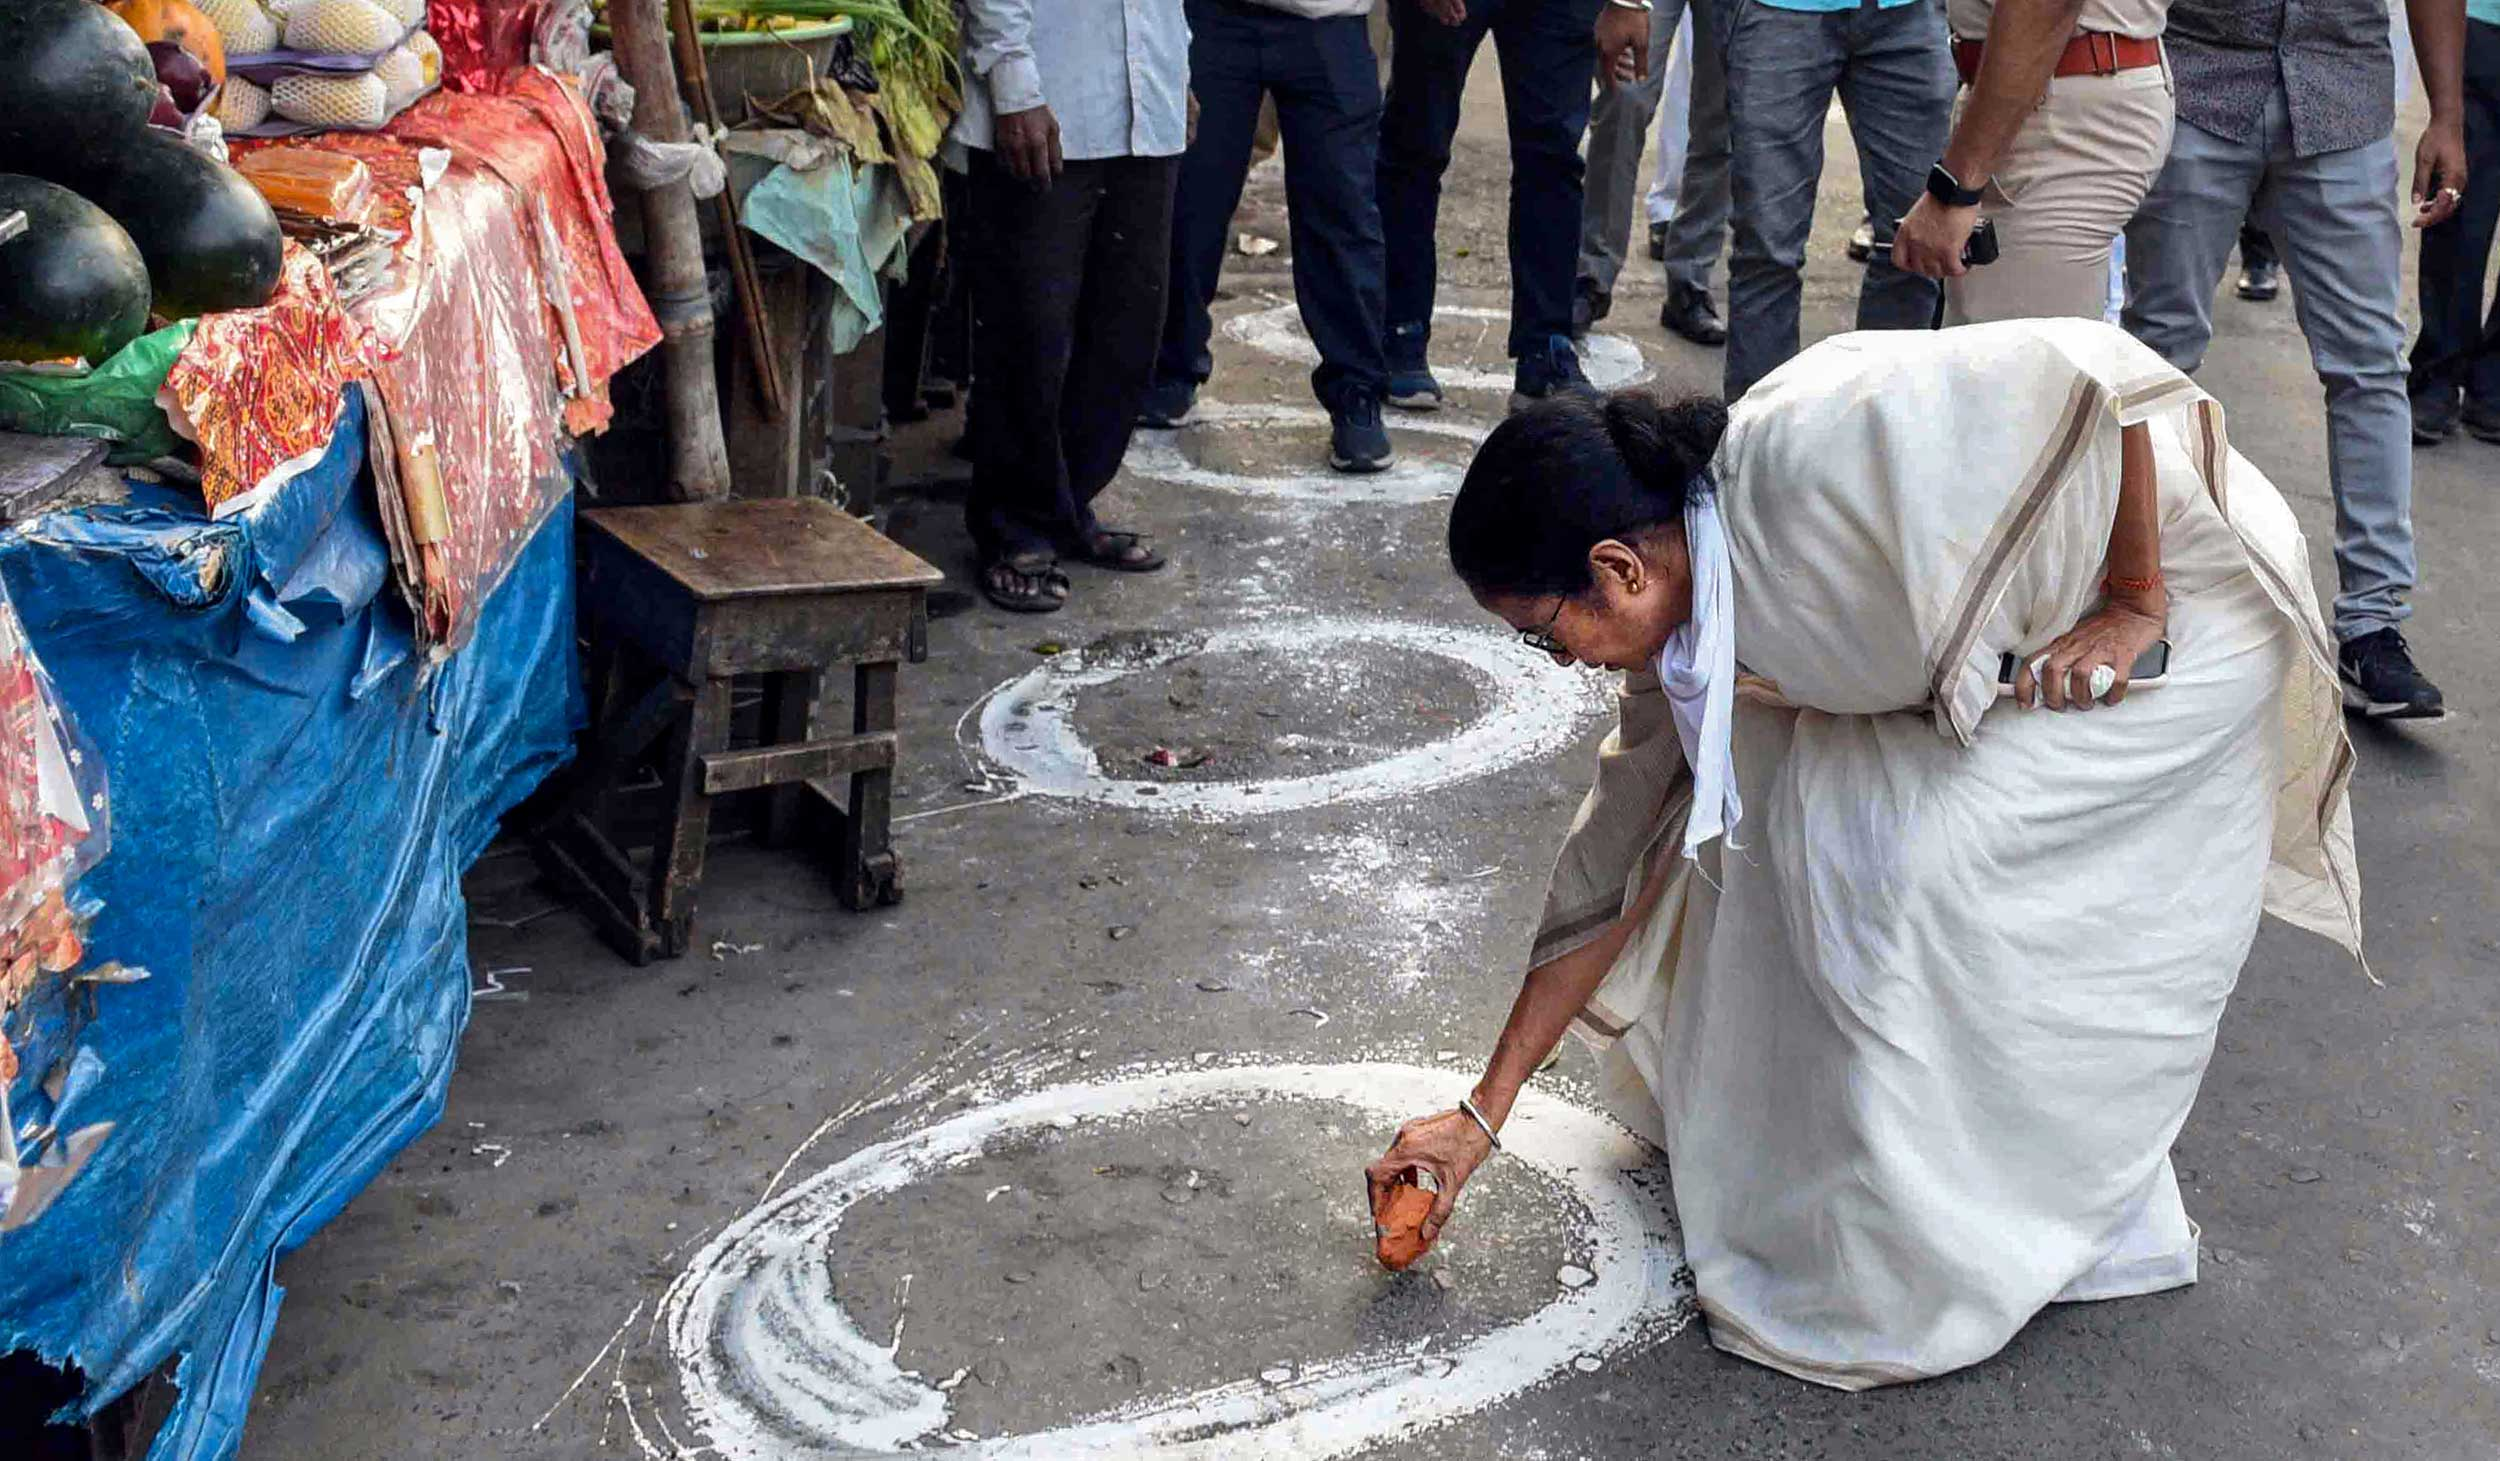 With a broken brick, Mamata draws a social-distancing circle for shoppers at a market in Calcutta on Thursday.